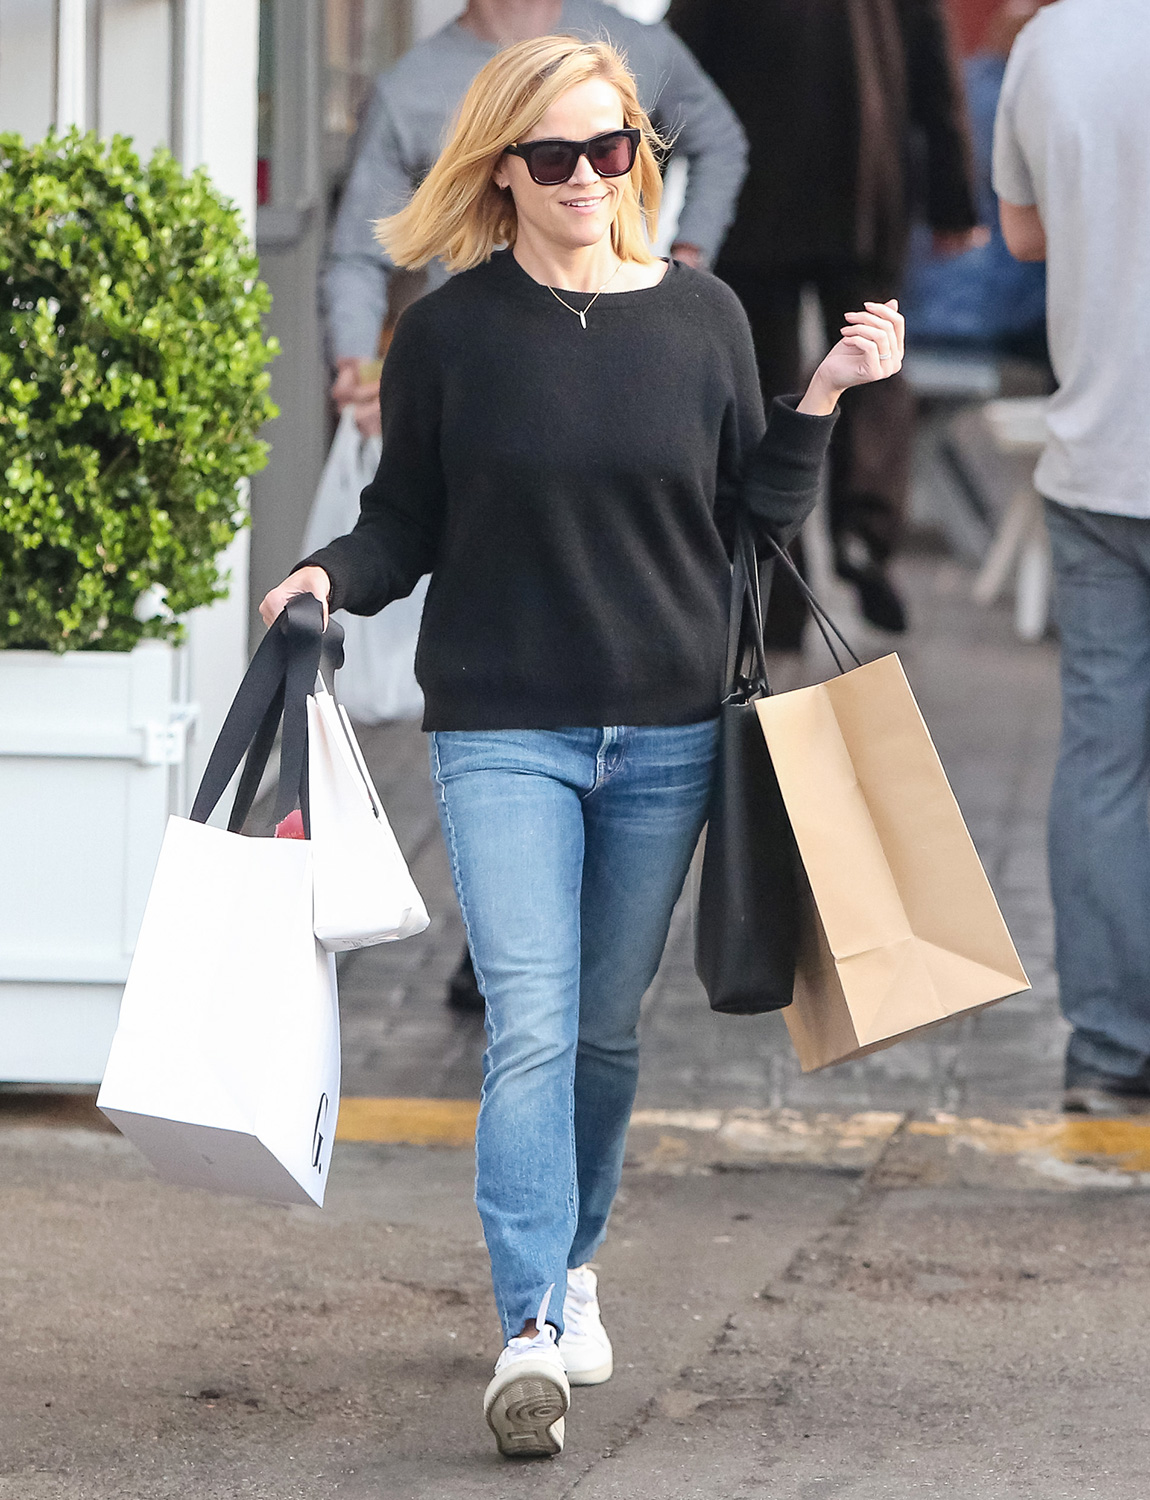 Reese Witherspoon is seen on February 13, 2020 in Los Angeles, California